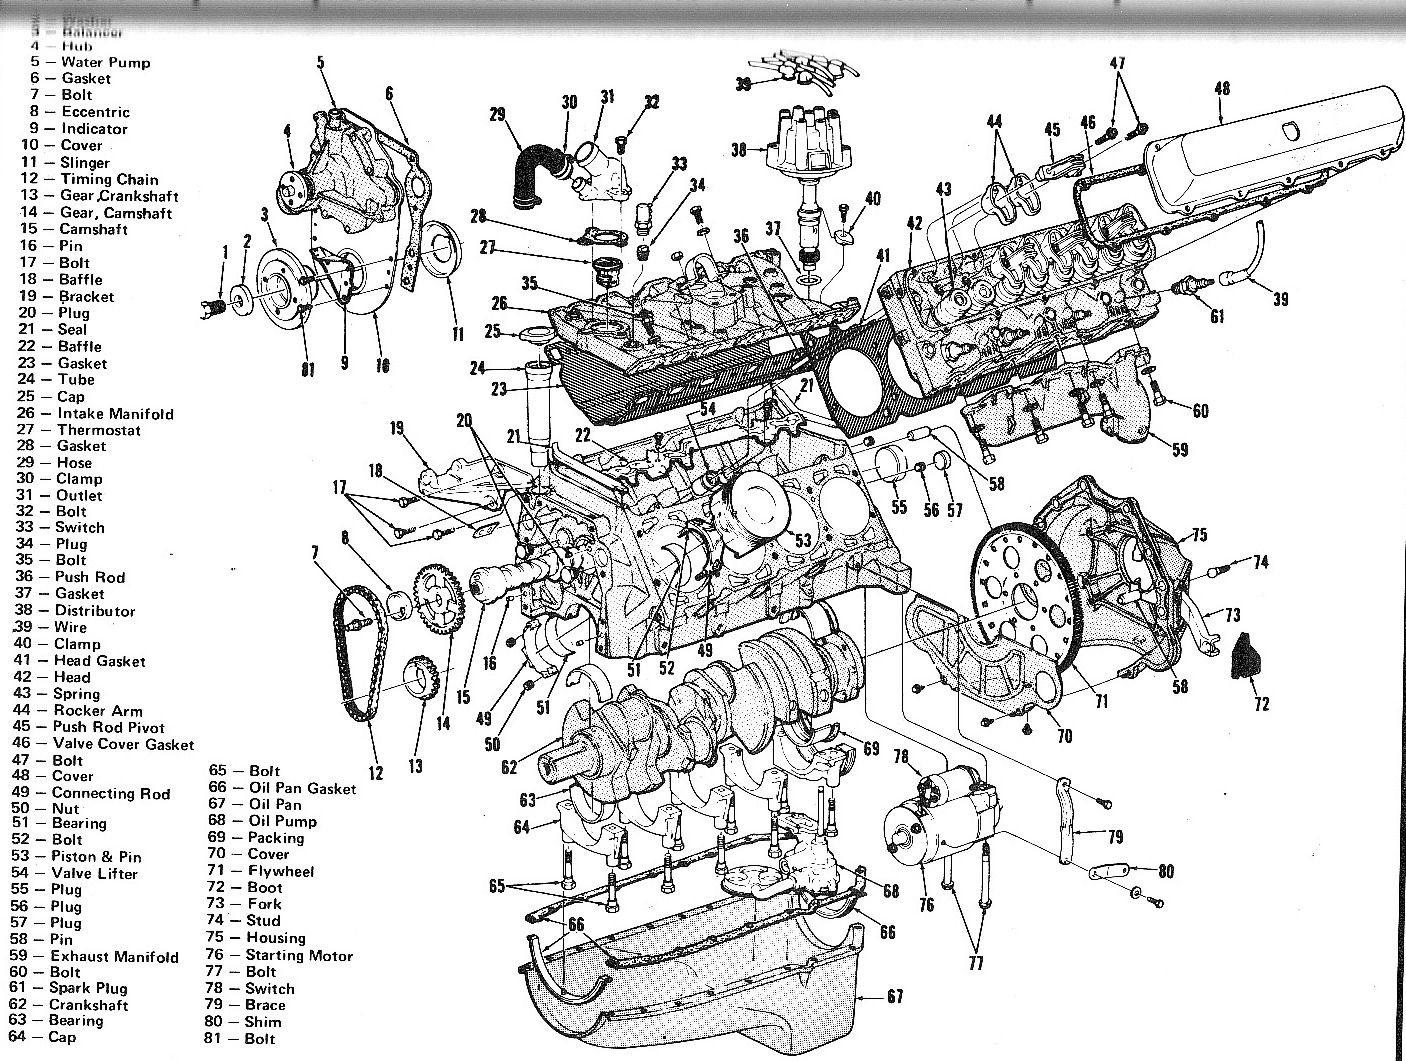 [DIAGRAM_4FR]  OY_1420] 06 Mustang V6 Engine Diagram Get Free Image About Wiring Diagram  Download Diagram | 1966 Ford Mustang V6 Wiring Diagram |  | Www Mohammedshrine Librar Wiring 101